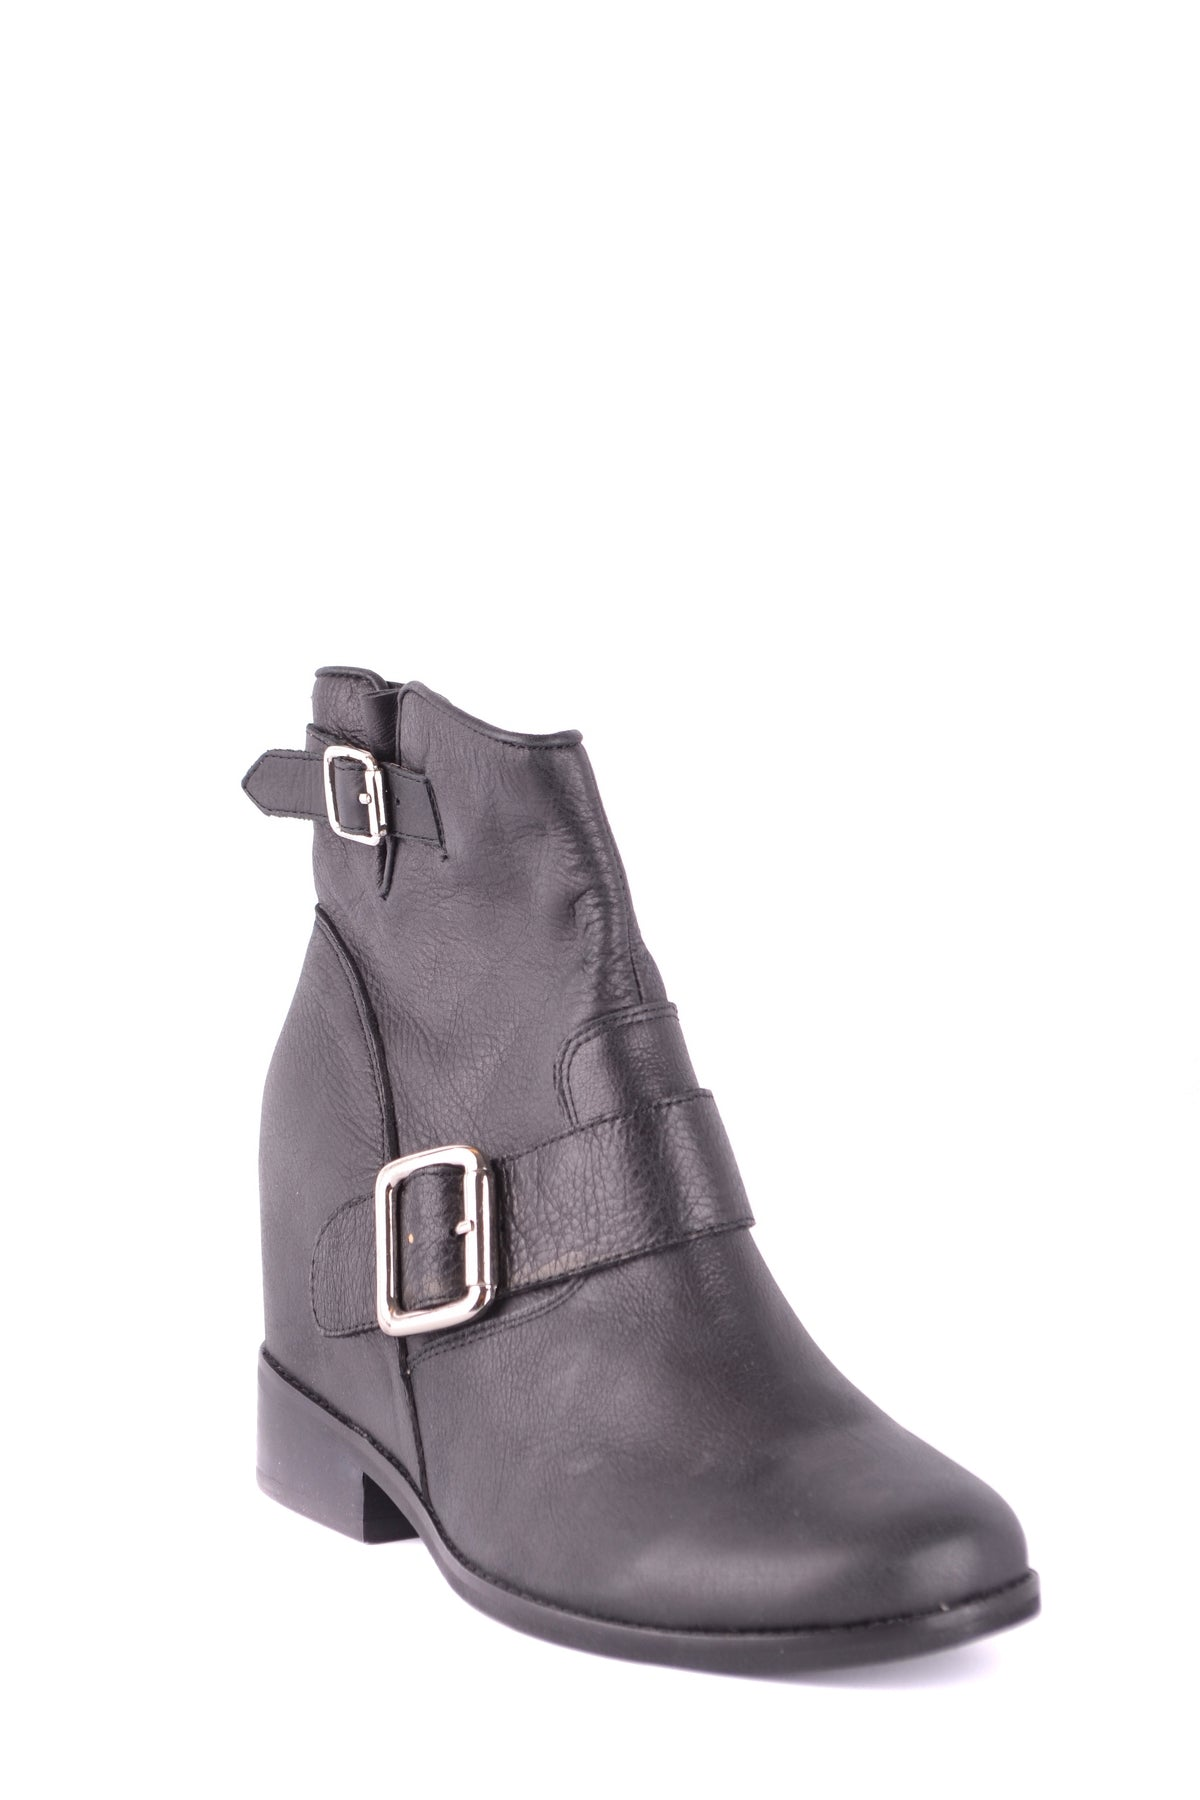 Shoes Jeffrey Campbell-Bootie - WOMAN-Product Details Type Of Accessory: ShoesTerms: New With LabelYear: 2017Main Color: BlackSeason: Fall / WinterMade In: ChinaSize: EuGender: WomanComposition: Leather 100%-Keyomi-Sook